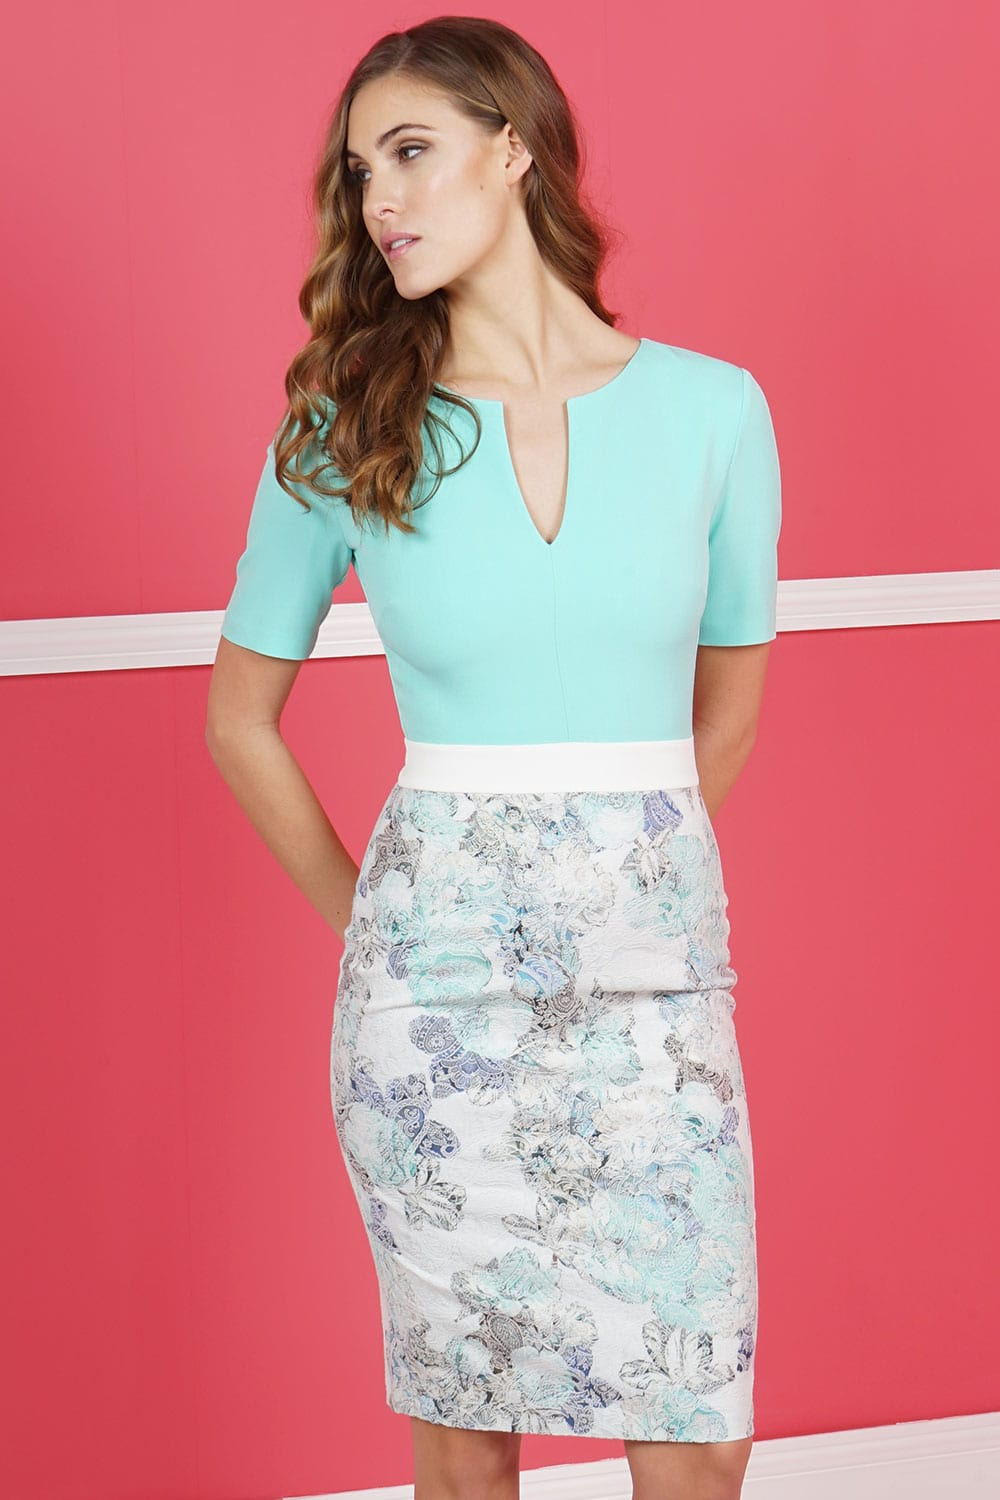 Hybrid Fashion 1204 Josie Mint Jacquard Pencil Dress